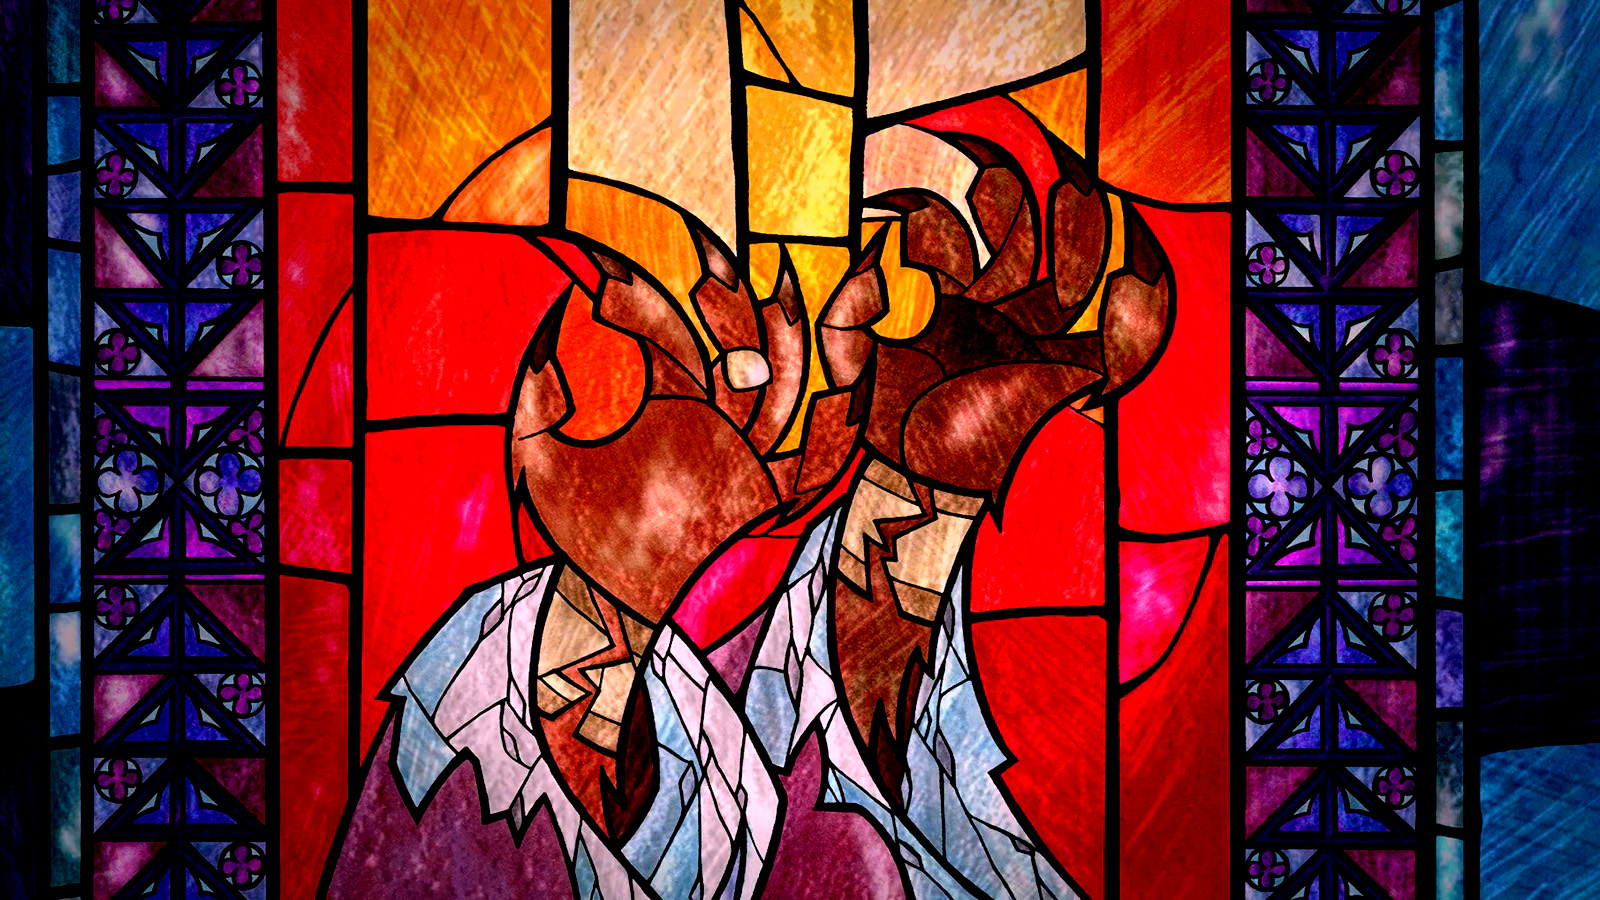 Stained Glass wallpaper